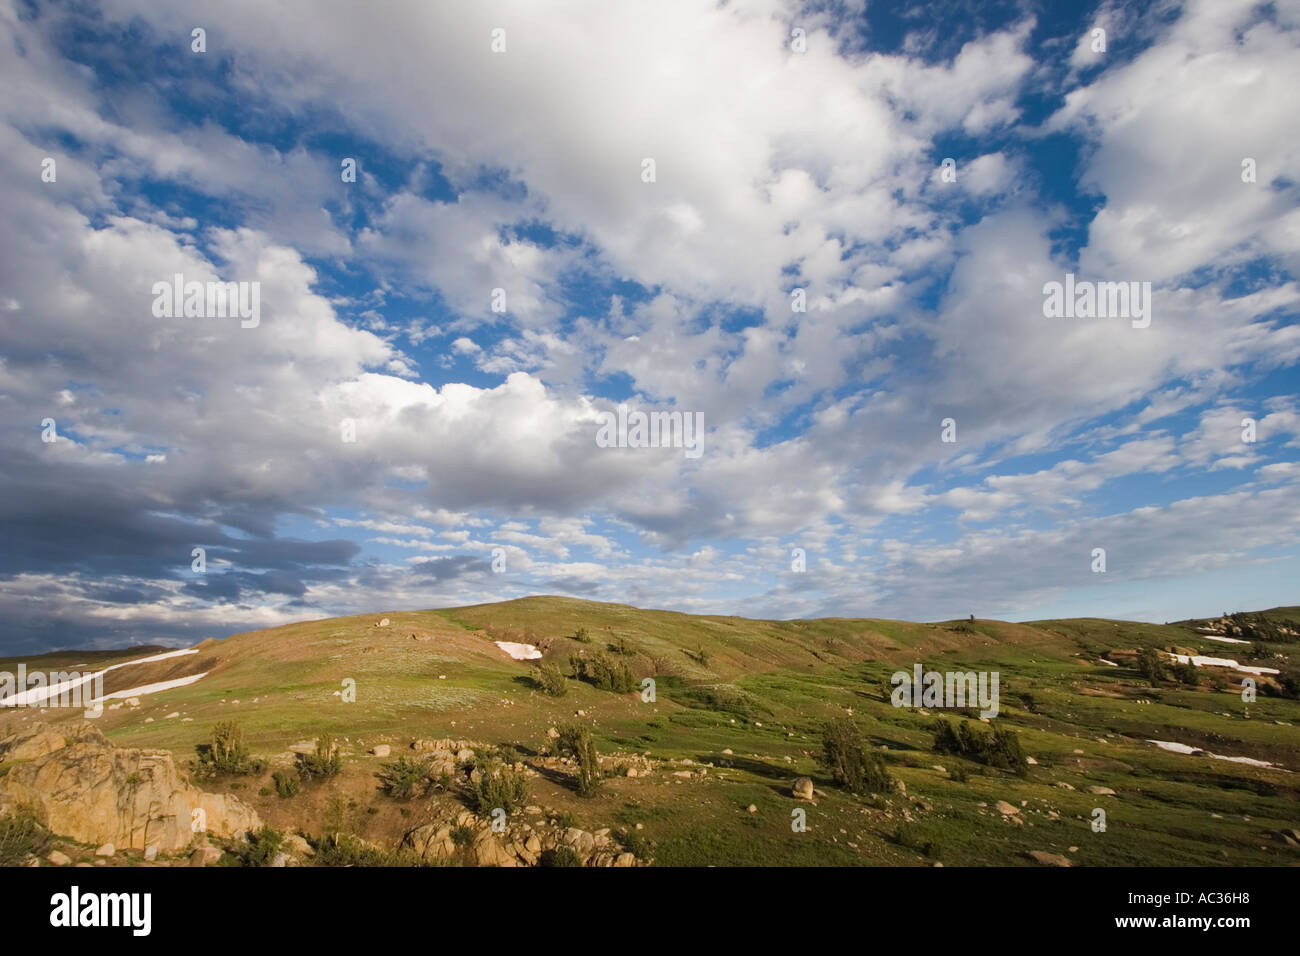 Partly cloudy blue sky above Emigrant Pass in the Emigrant Wilderness Area California, USA. - Stock Image